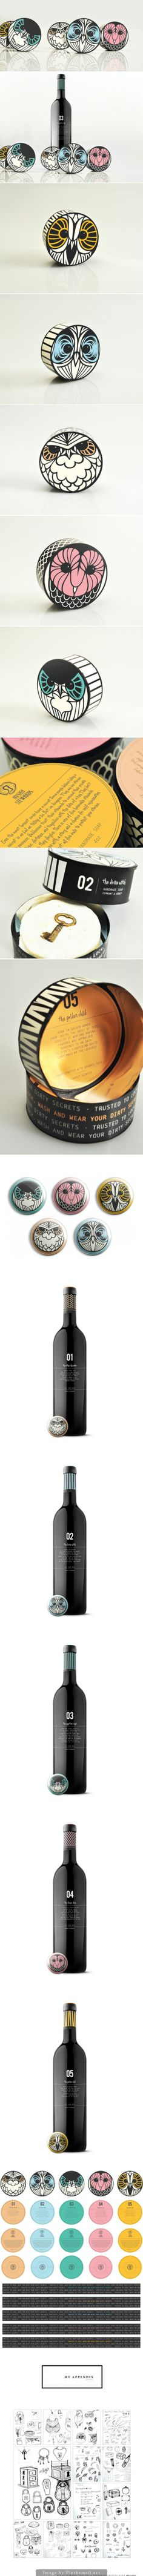 Unusual #packaging #designs for collectibles curated by Packaging Diva PD - created via http://www.packageinspiration.com/hushh-stewards.html/